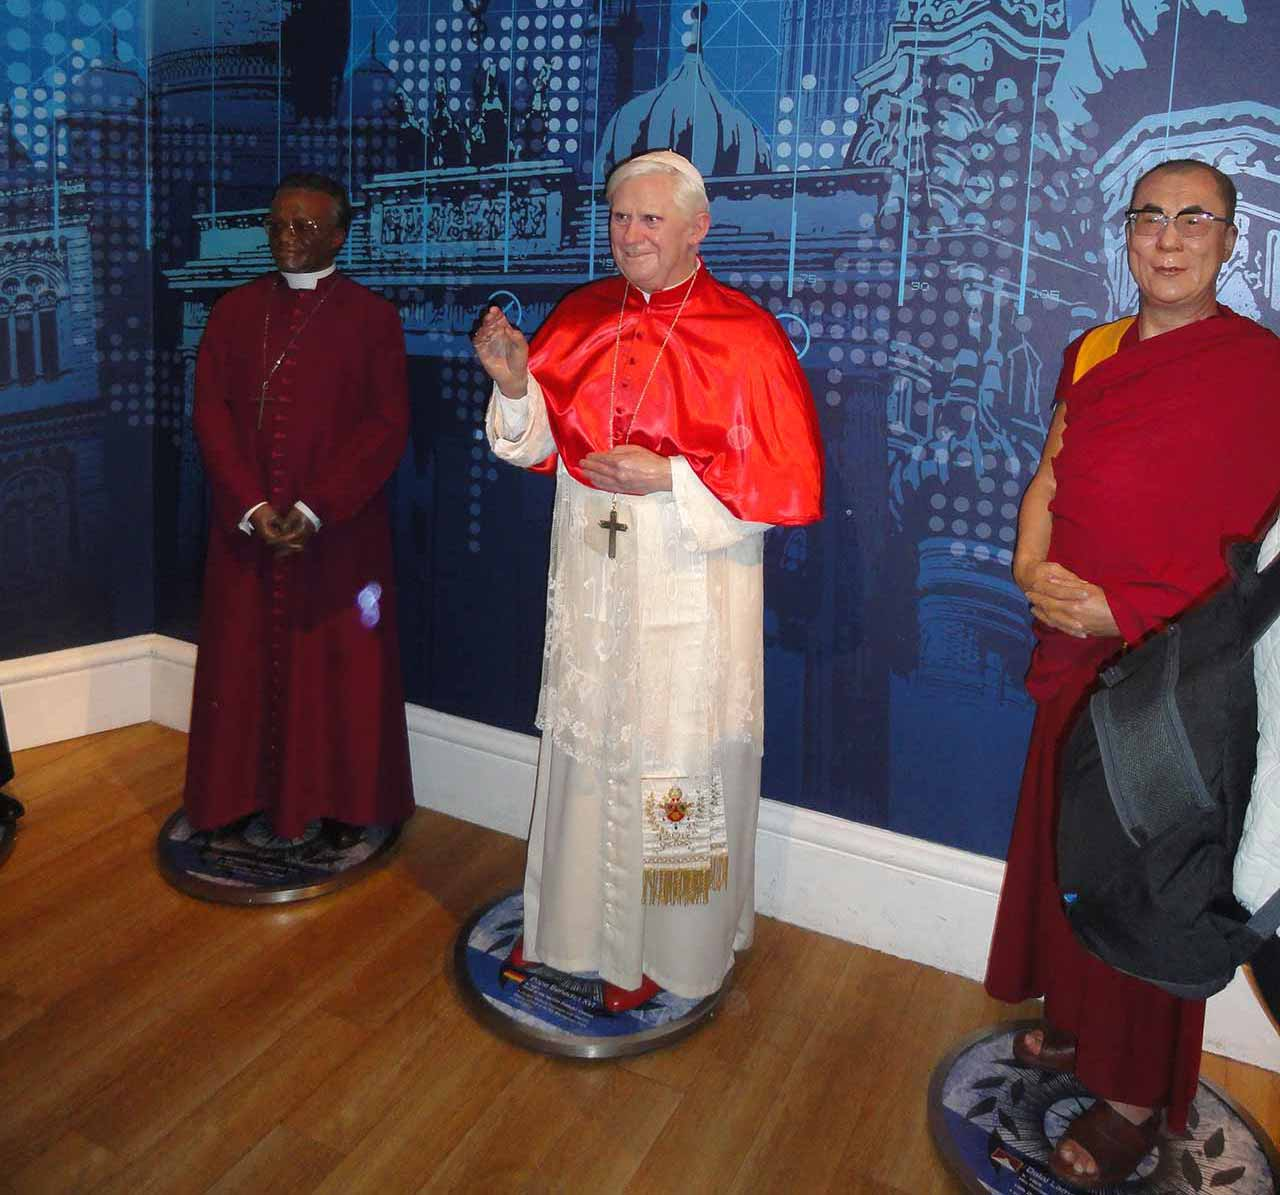 Wax statues at Madam Tussauds